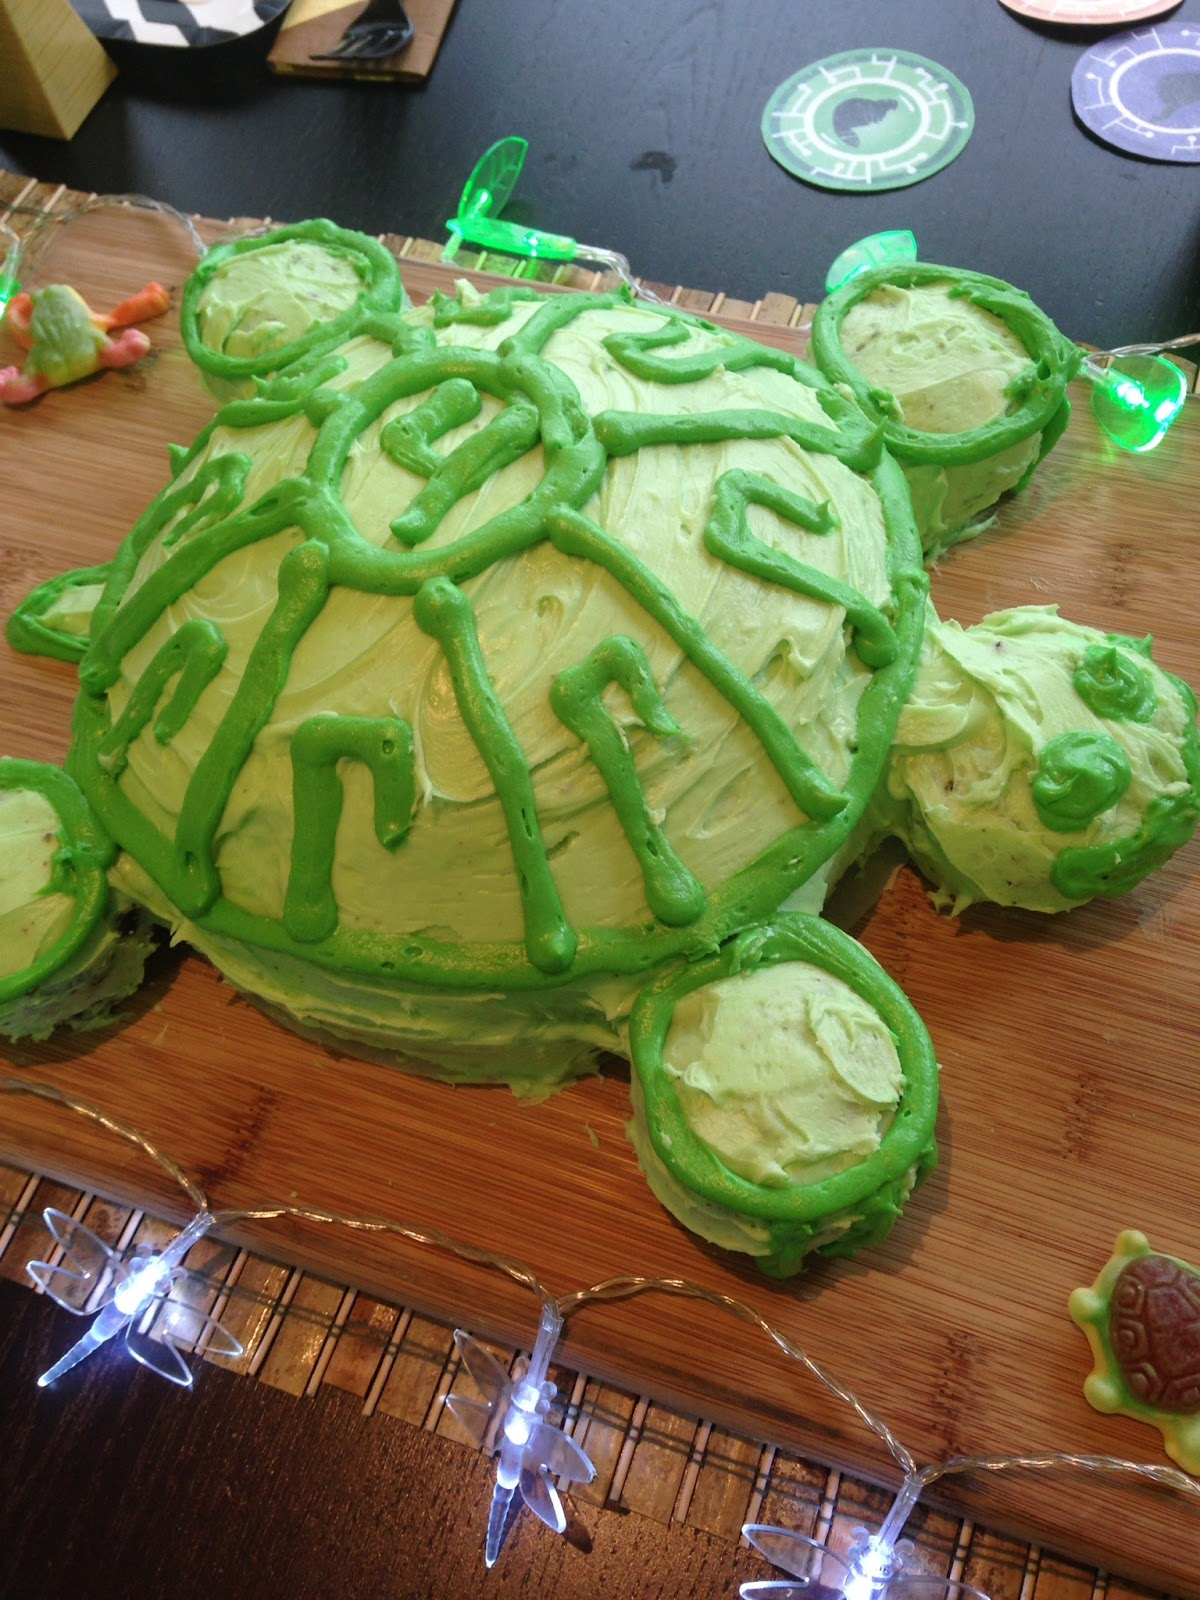 Wild Kratts Tortuga Turtle Birthday Cake Tutorial The Style Sisters